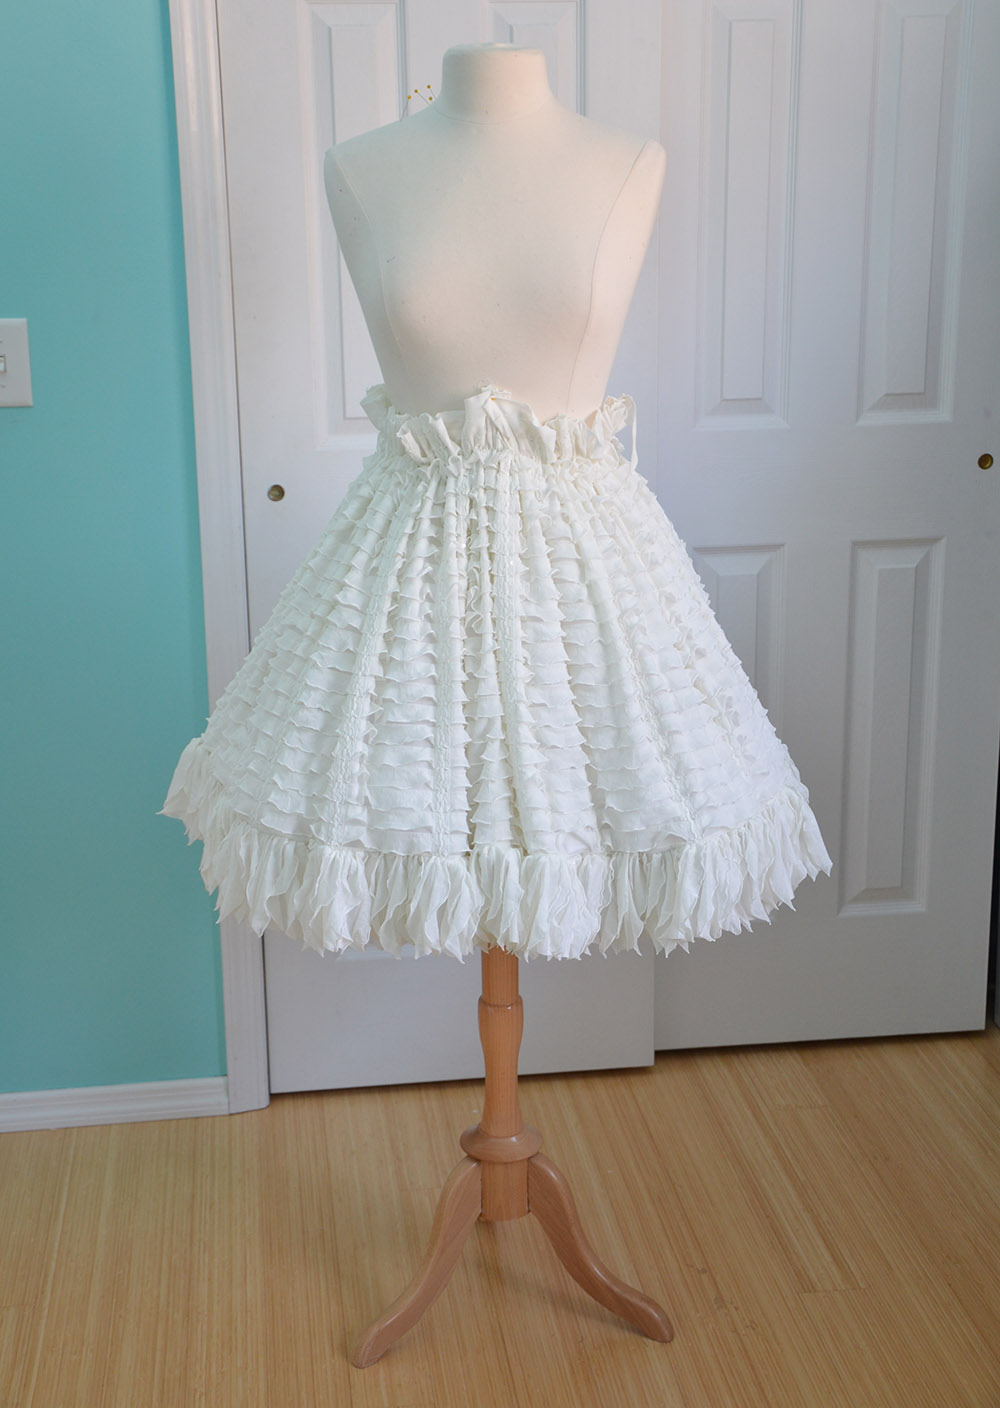 How to sew a fluffy skirt 81